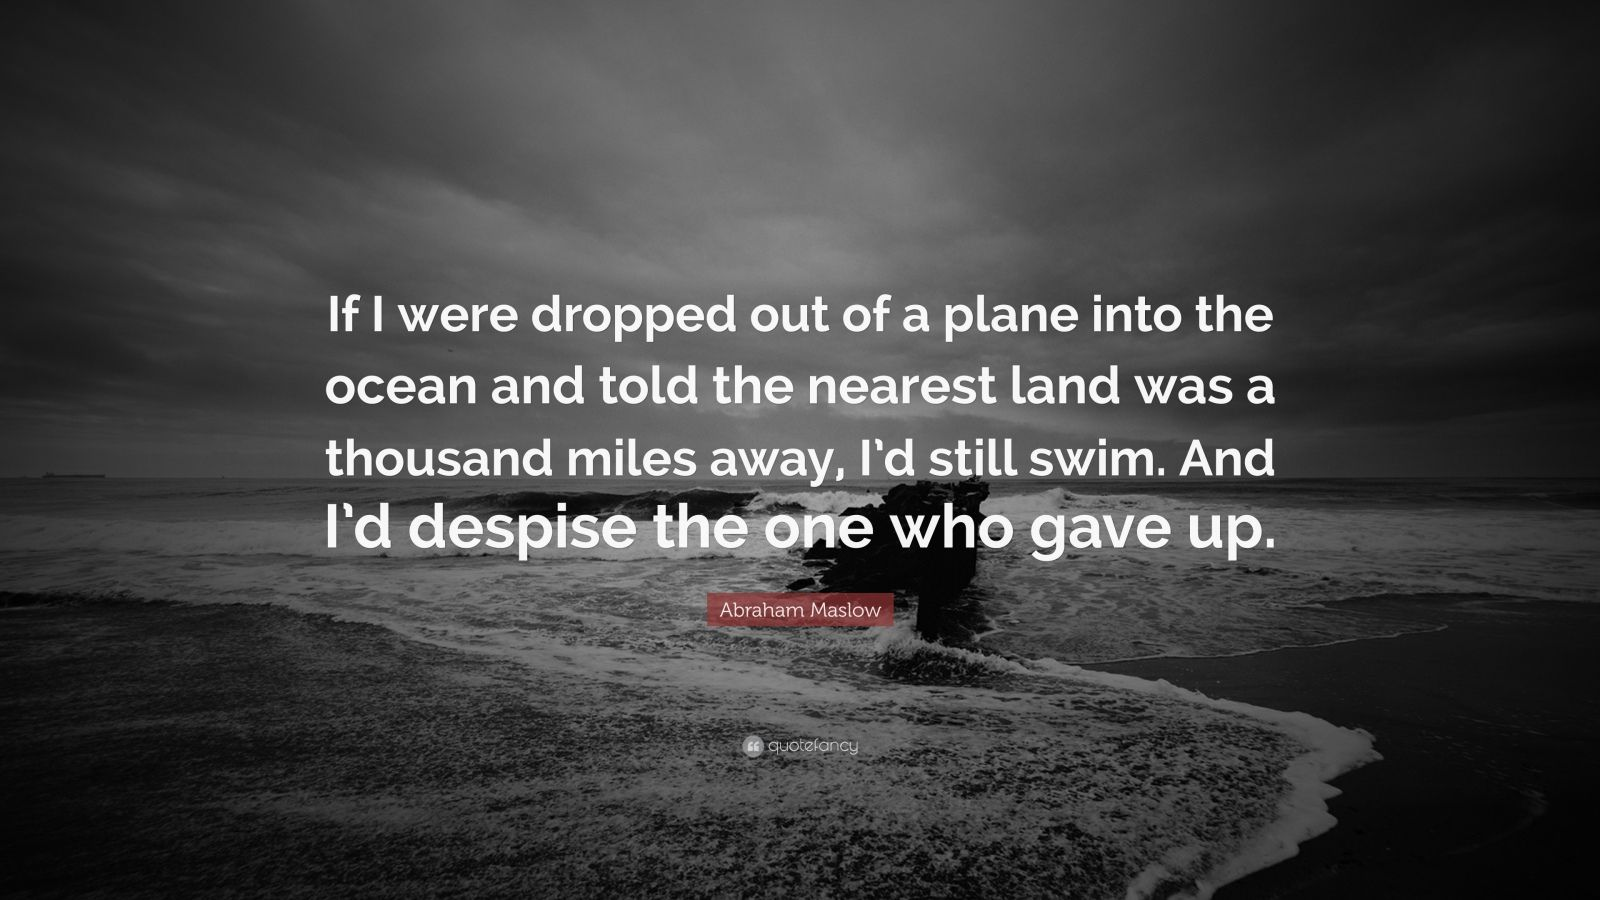 """Abraham Maslow Quote: """"If I were dropped out of a plane into the ocean and told the nearest land was a thousand miles away, I'd still swim. And I'd despise the one who gave up."""""""